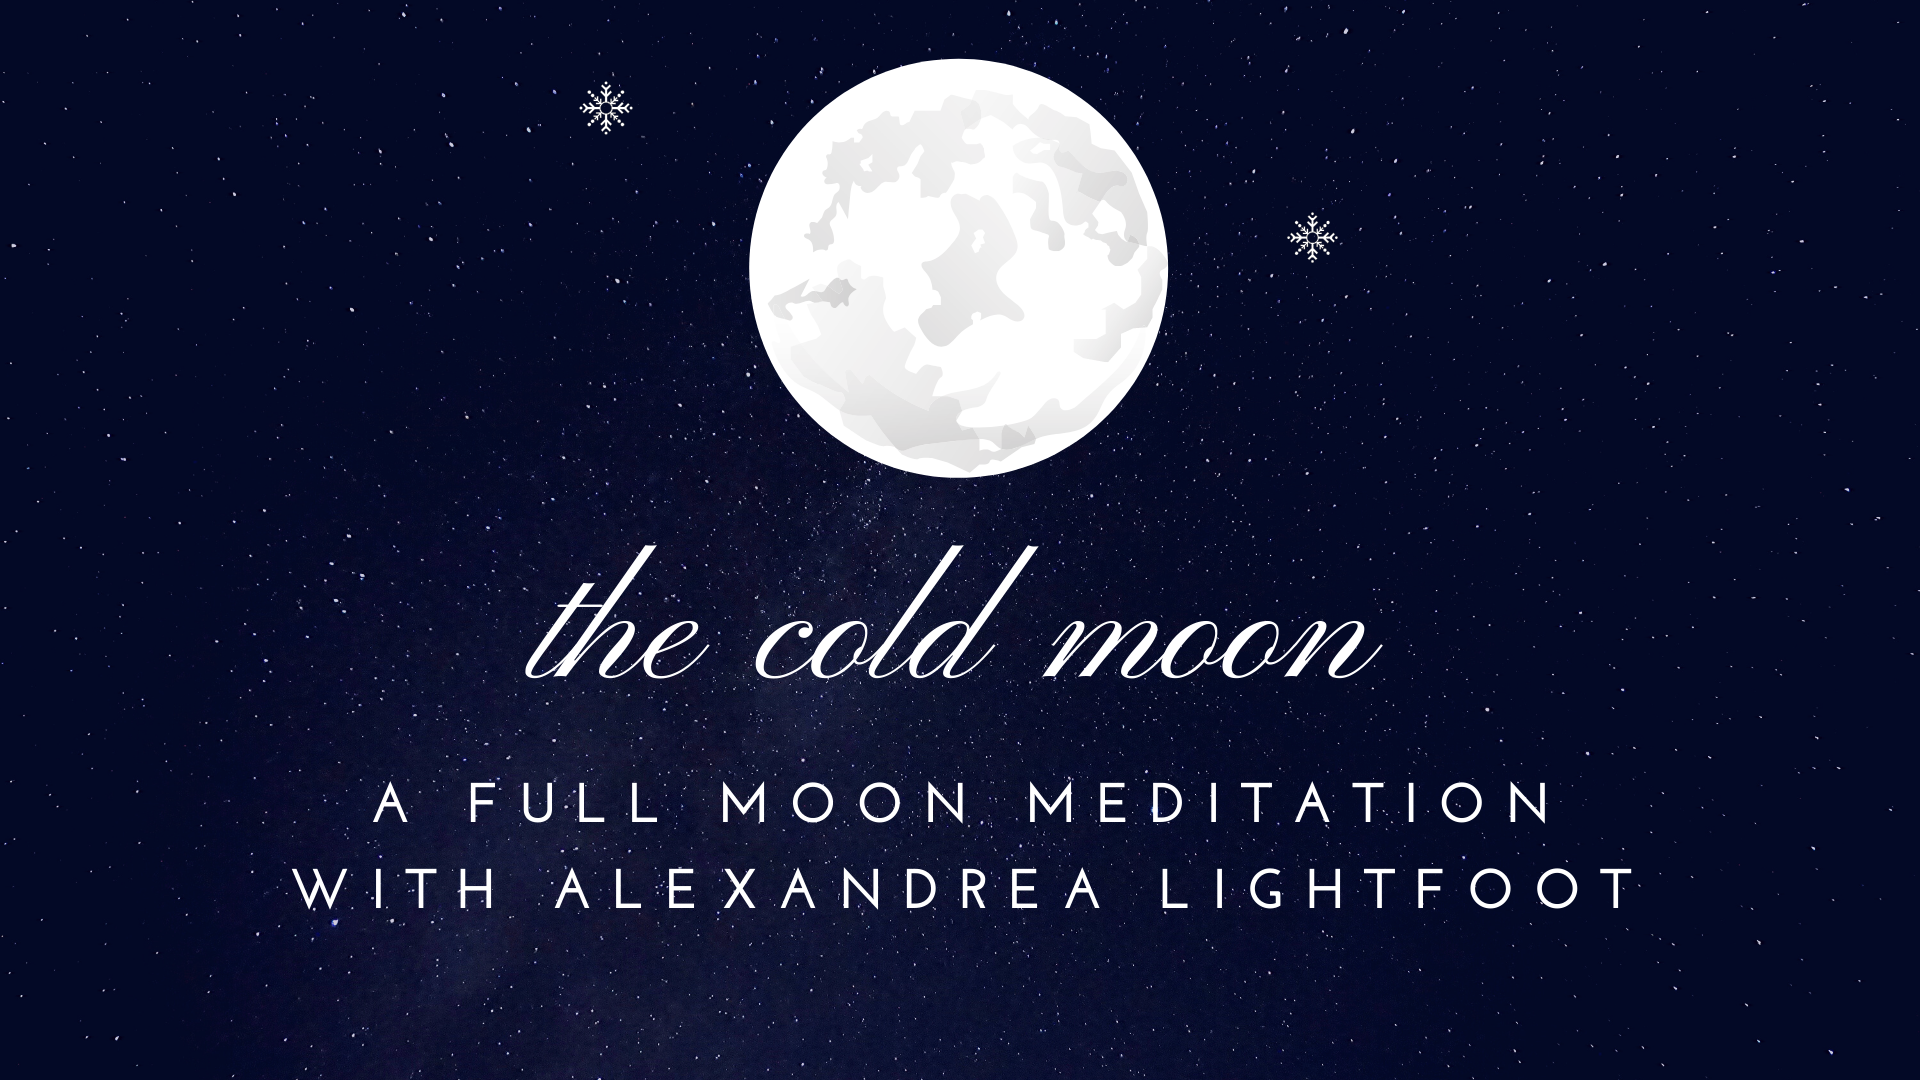 The Cold Moon - A Full Moon Meditation